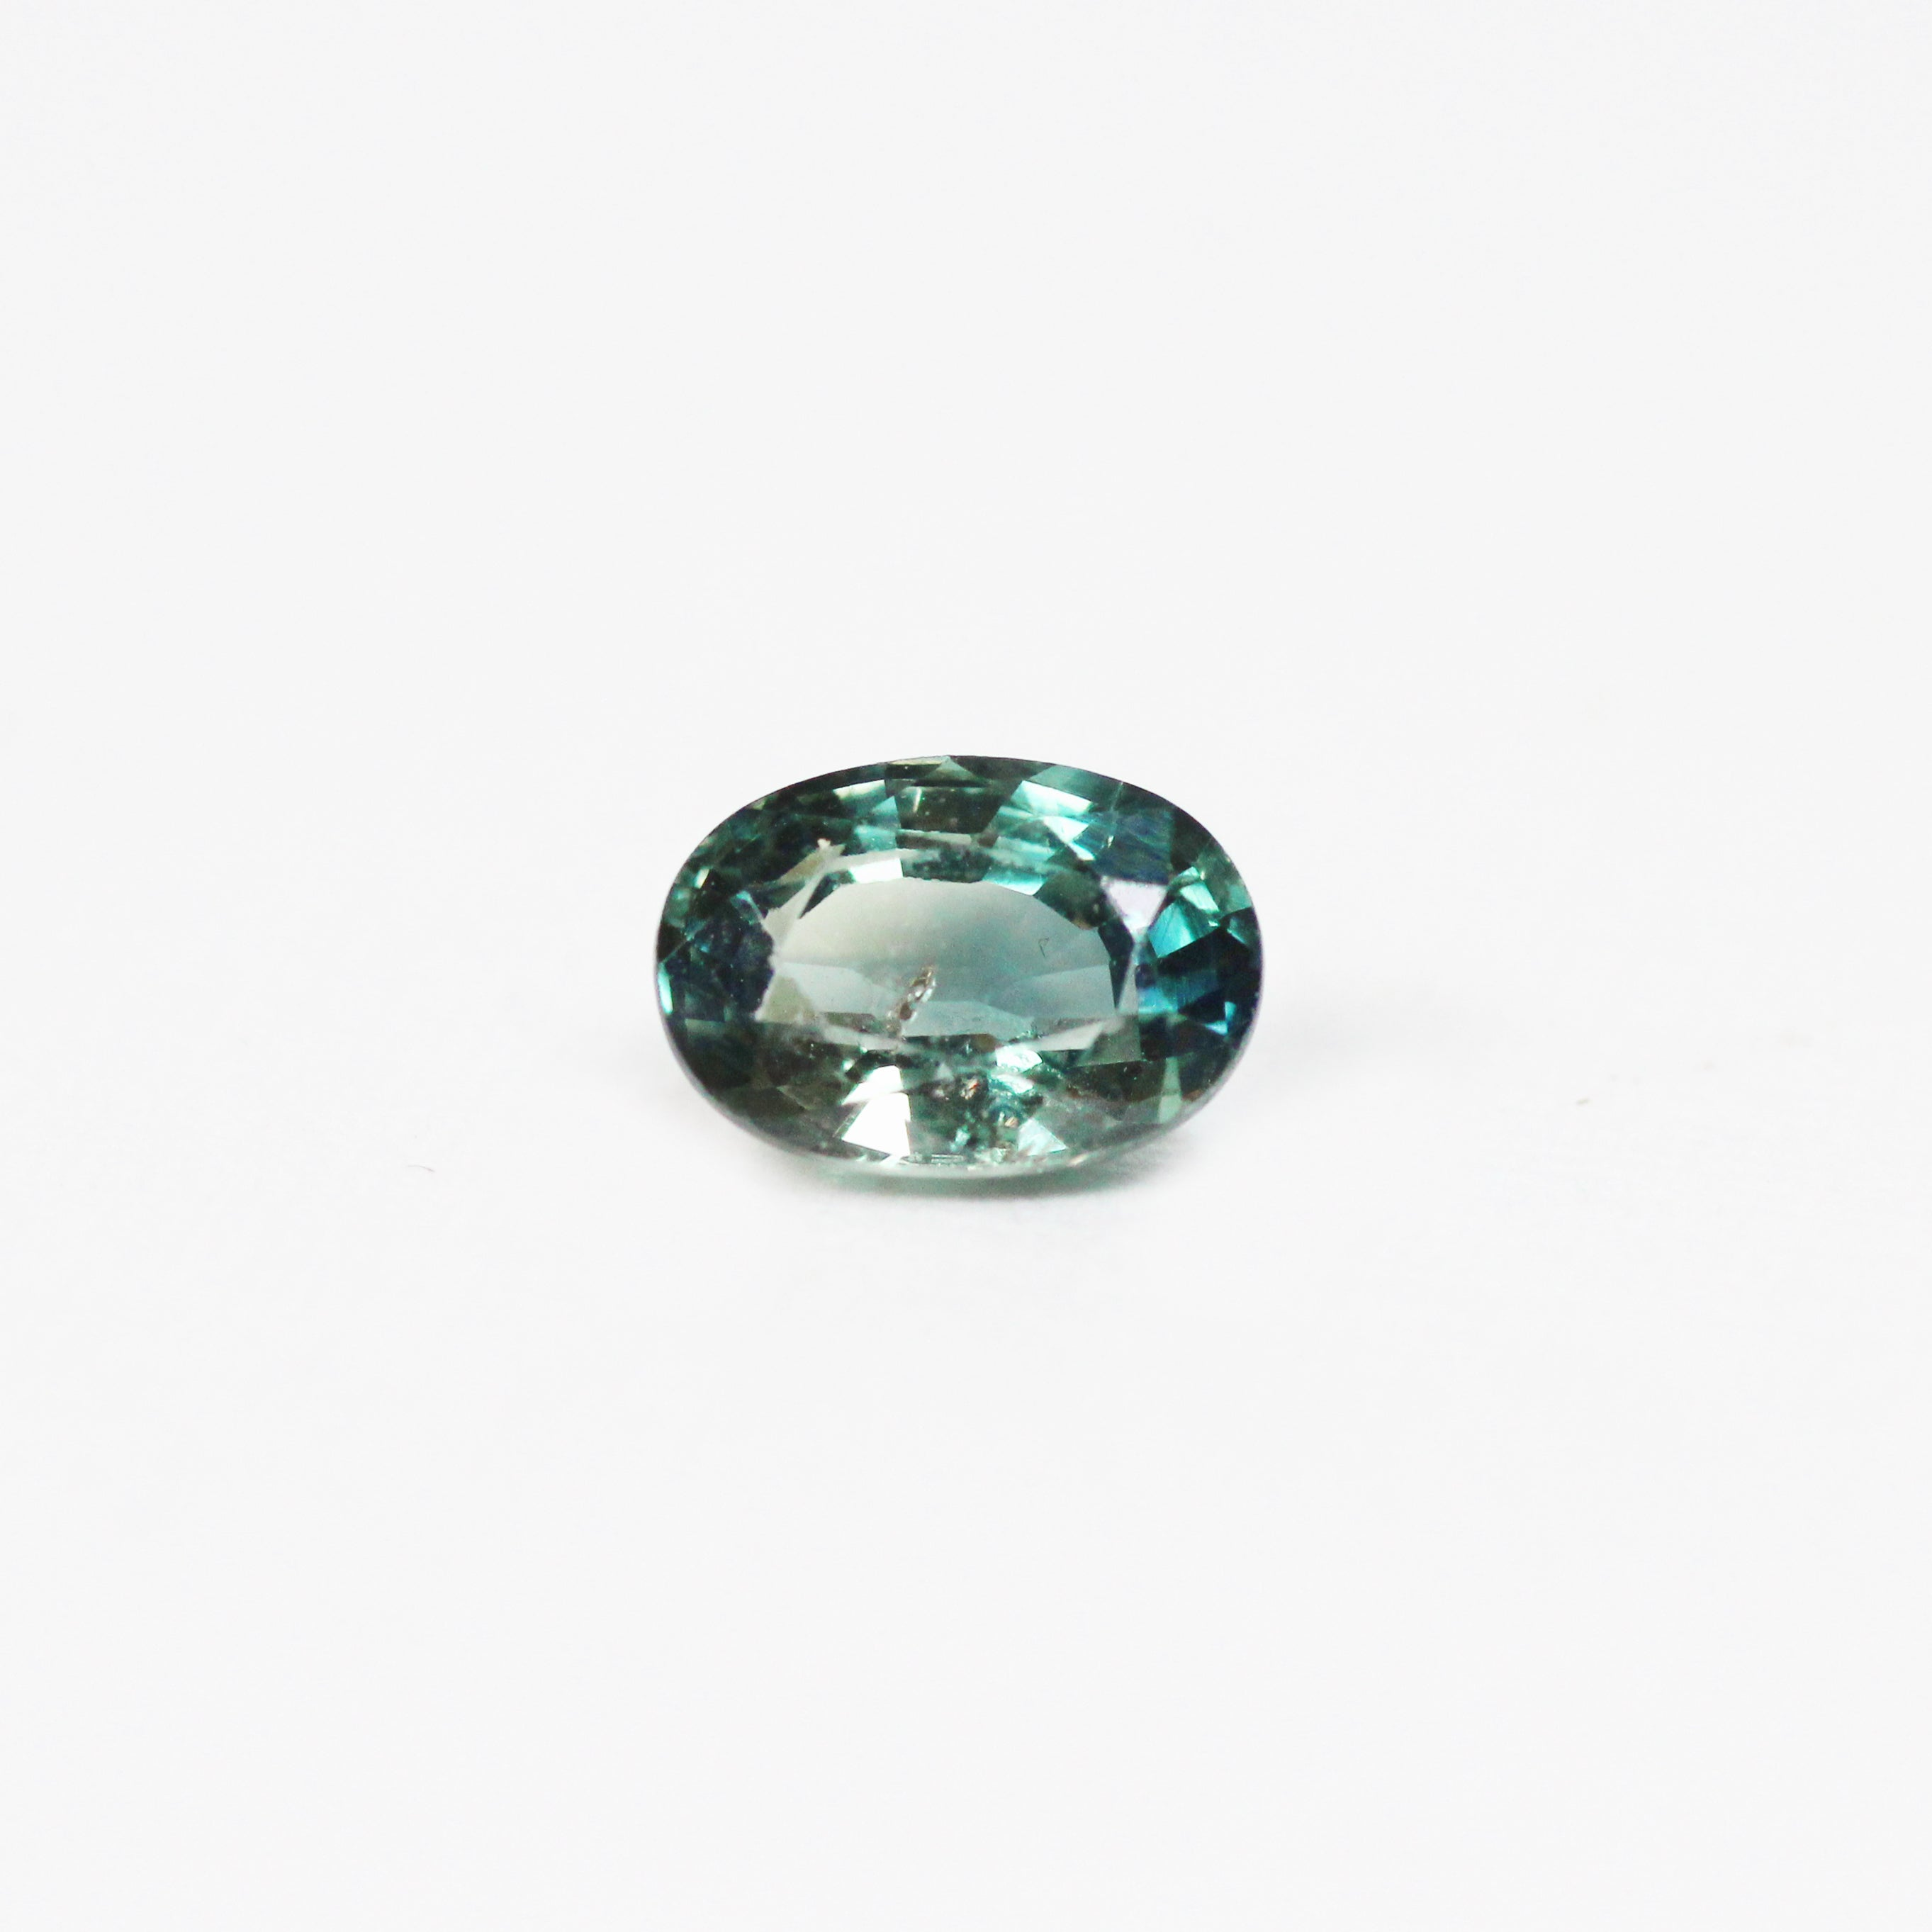 1.24ct Oval Sapphire for Custom Work - Inventory Code S124